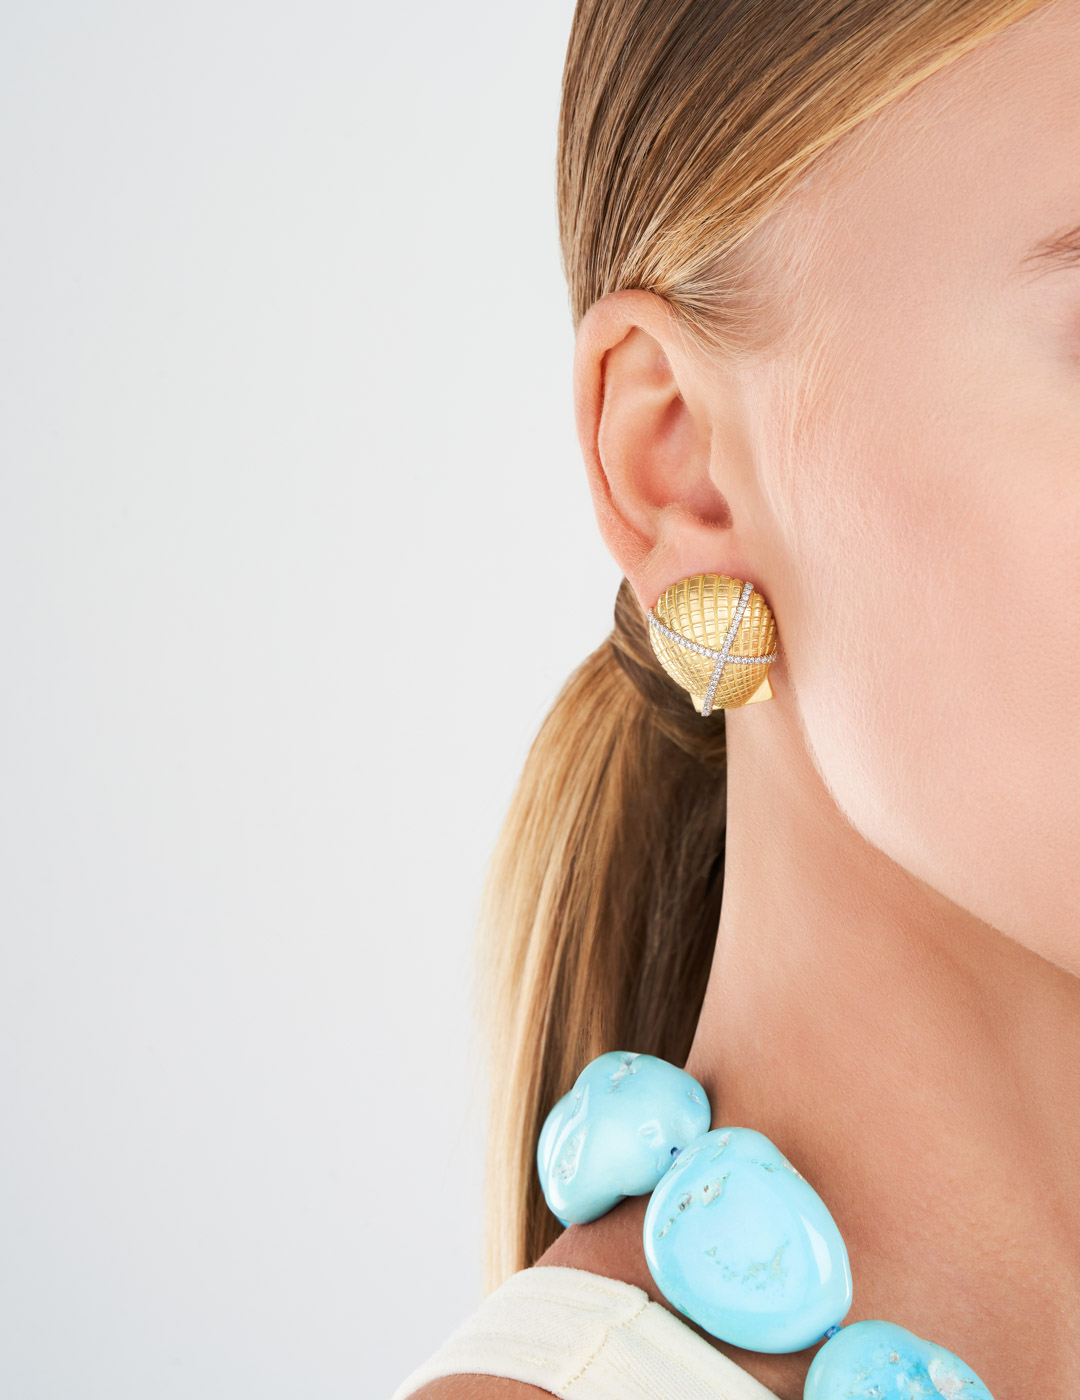 mish_products_earrings_Cabana-Scallop-Tassel-ER-5